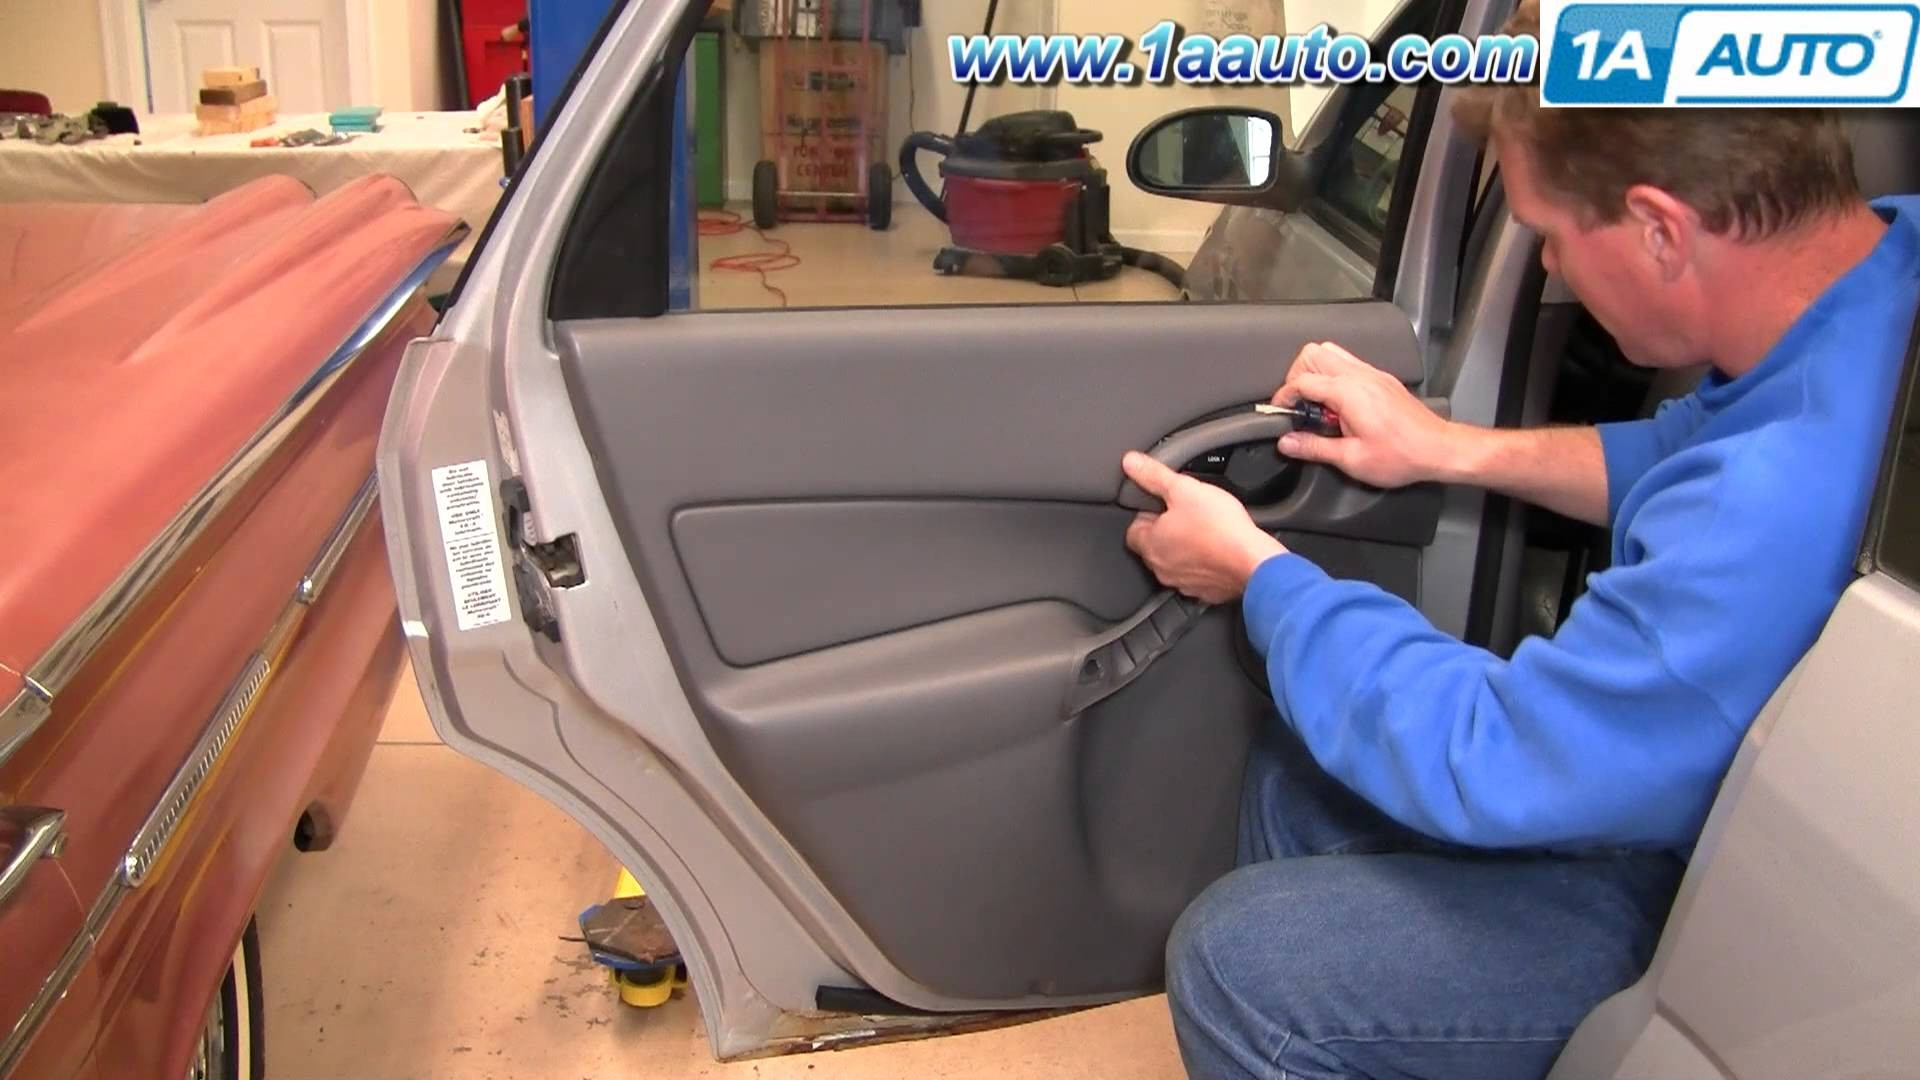 Superieur How To Install Replace Remove Rear Inside Door Panel Ford Focus 00